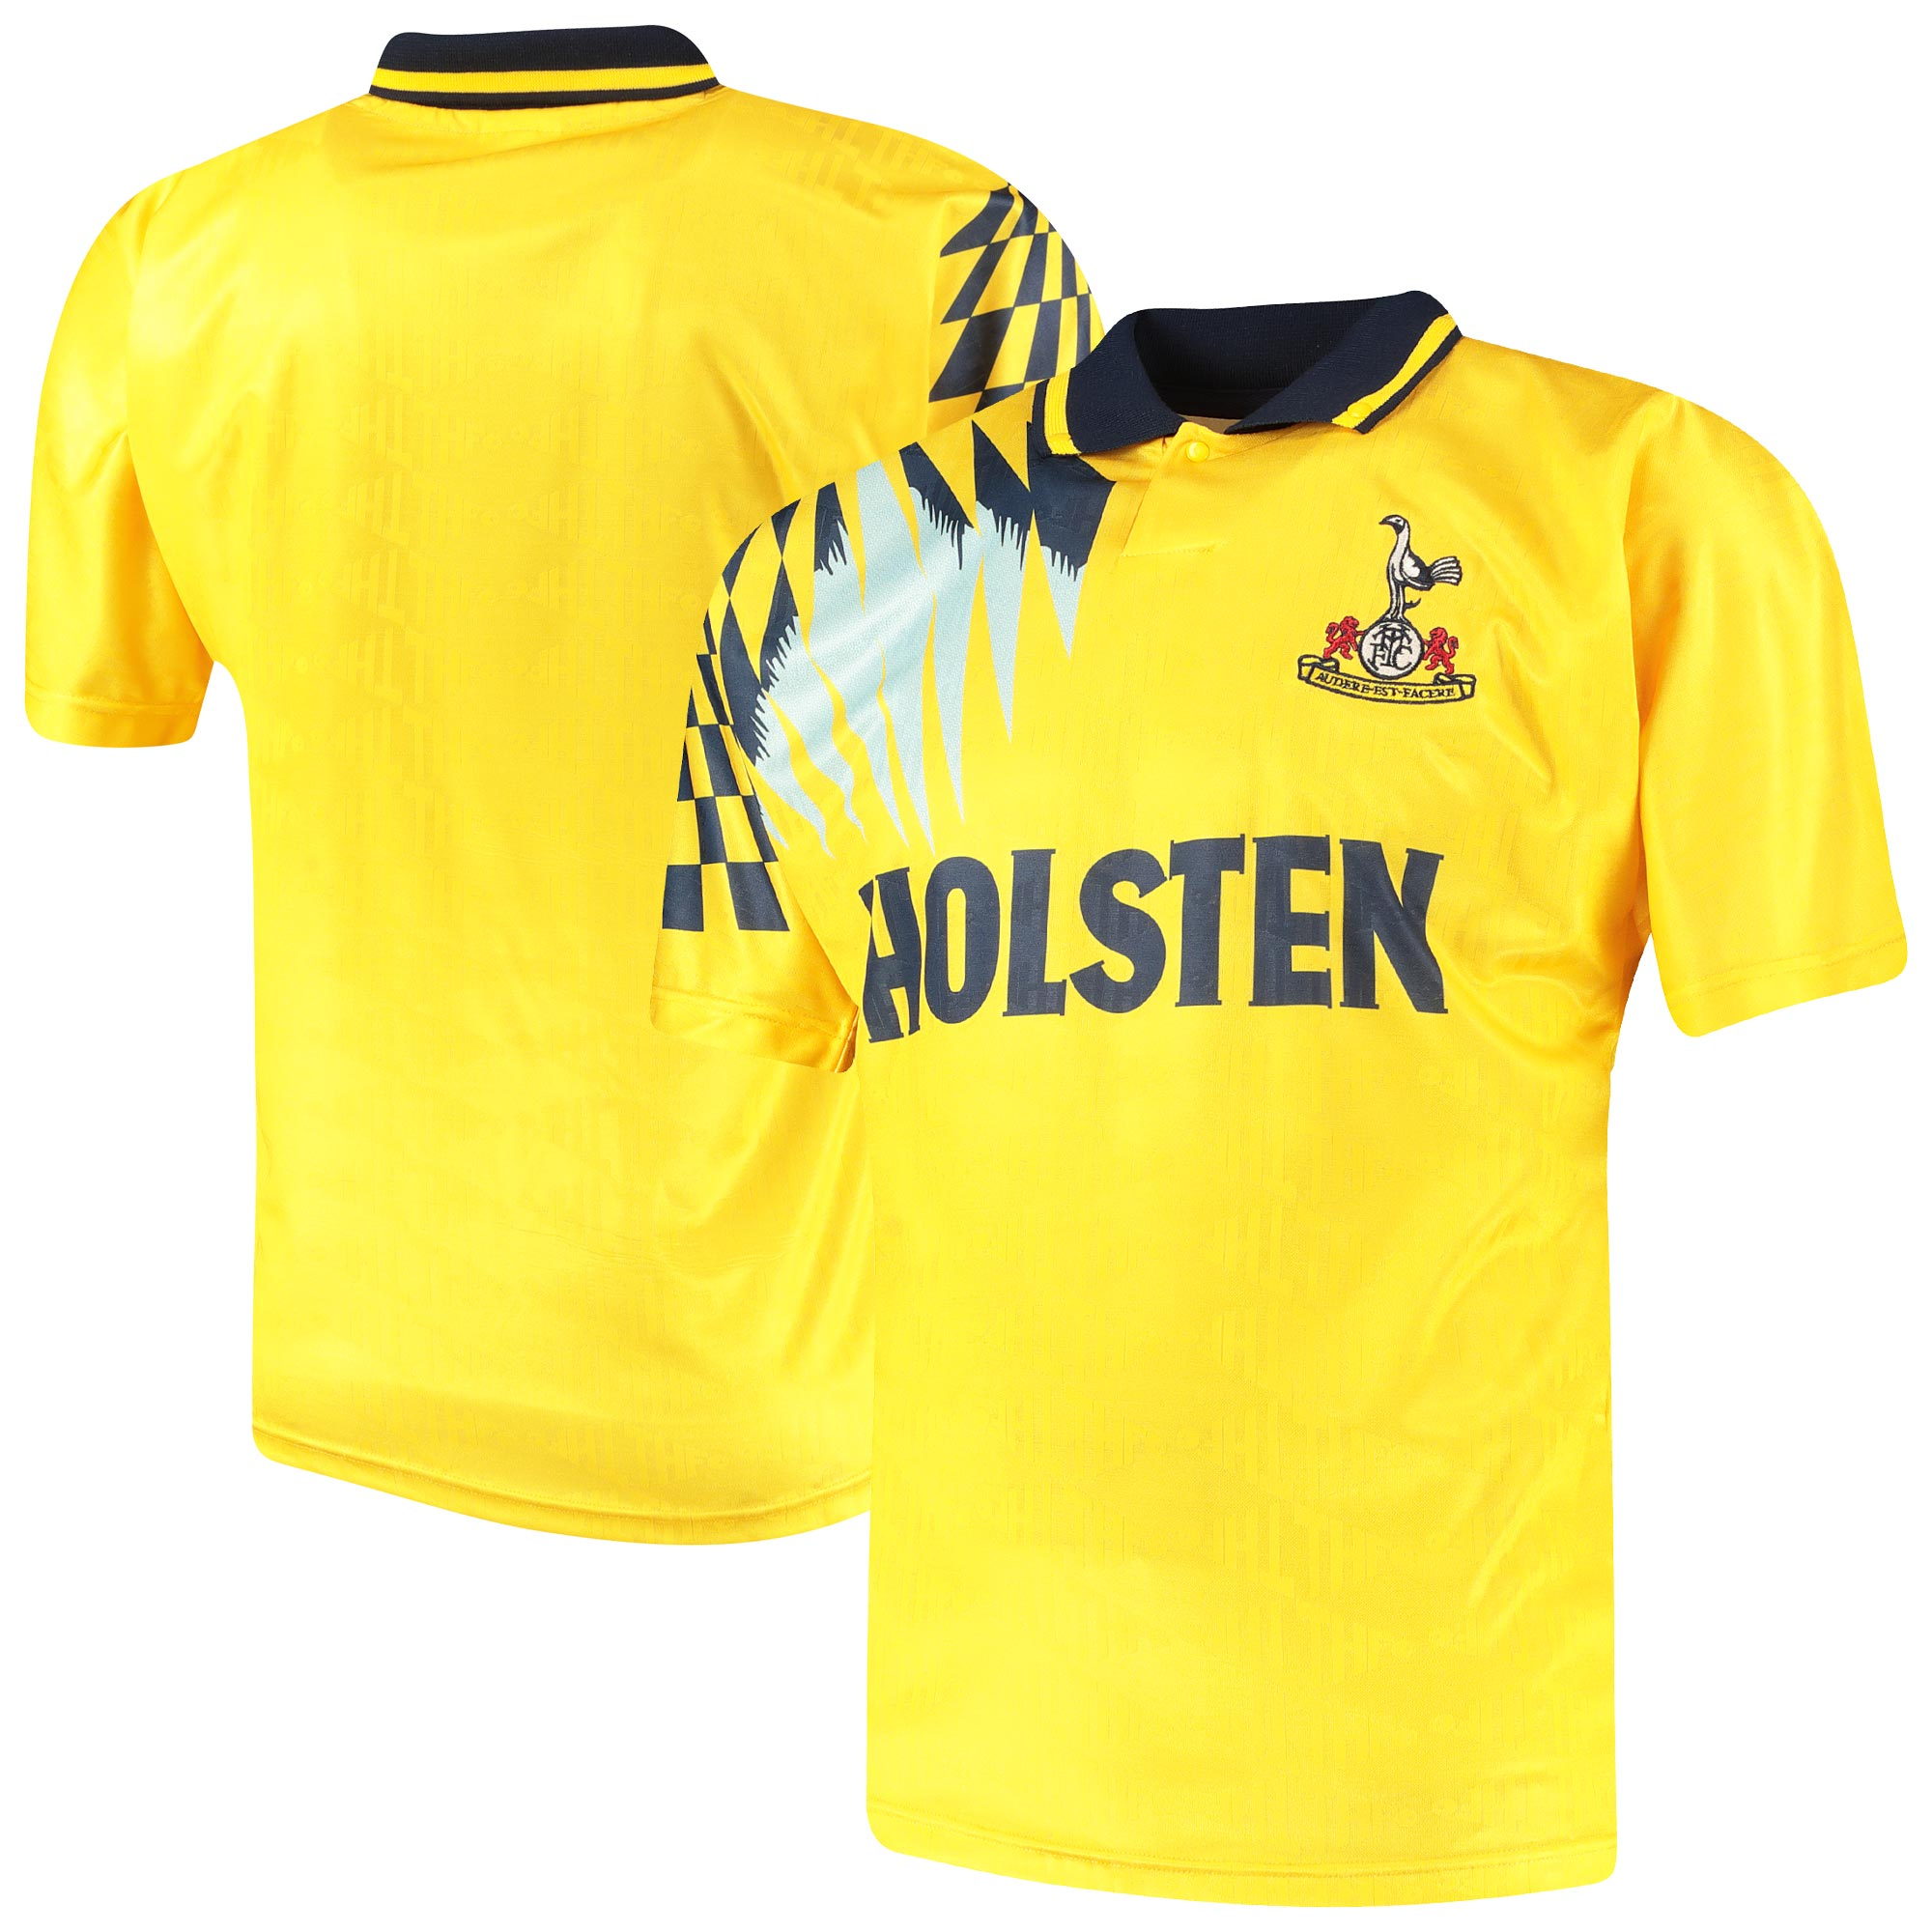 Tottenham Hotspur 1992 Away Shirt